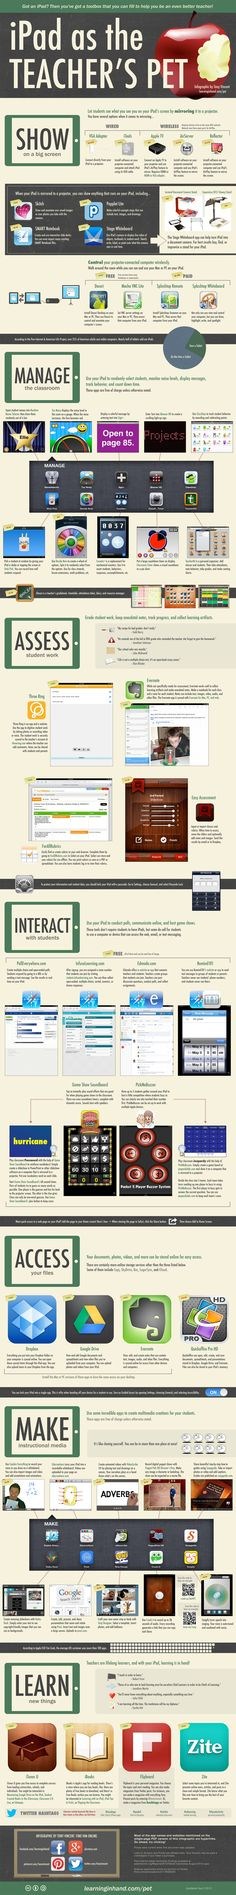 Great infographic on the ways to use the iPad to support teaching and learning. iPad as the Teachers Pet — Tony Vincent - Learning in Hand Teacher Tools, Teacher Hacks, Teacher Resources, Teaching Technology, Educational Technology, Technology Tools, Technology Integration, Apple Education, Teachers Pet